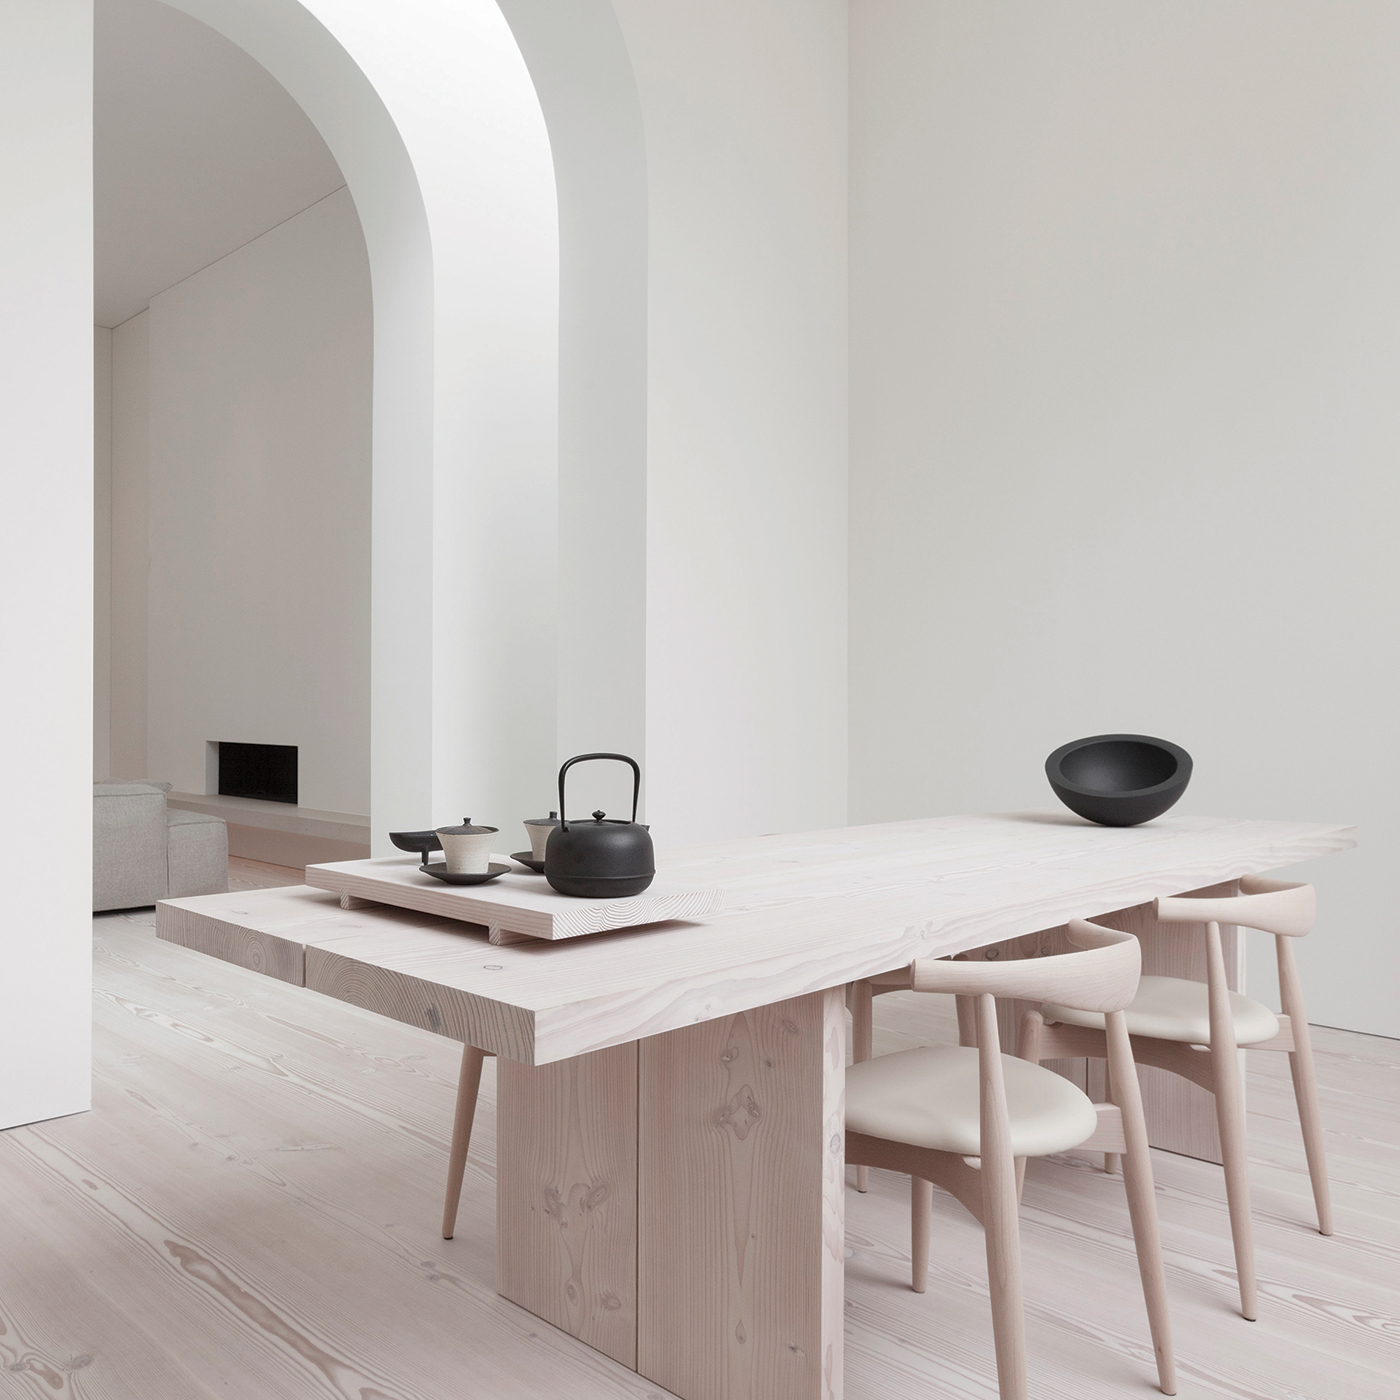 minimal wooden dining table in a calm white Japanese interior with wooden Douglas floor